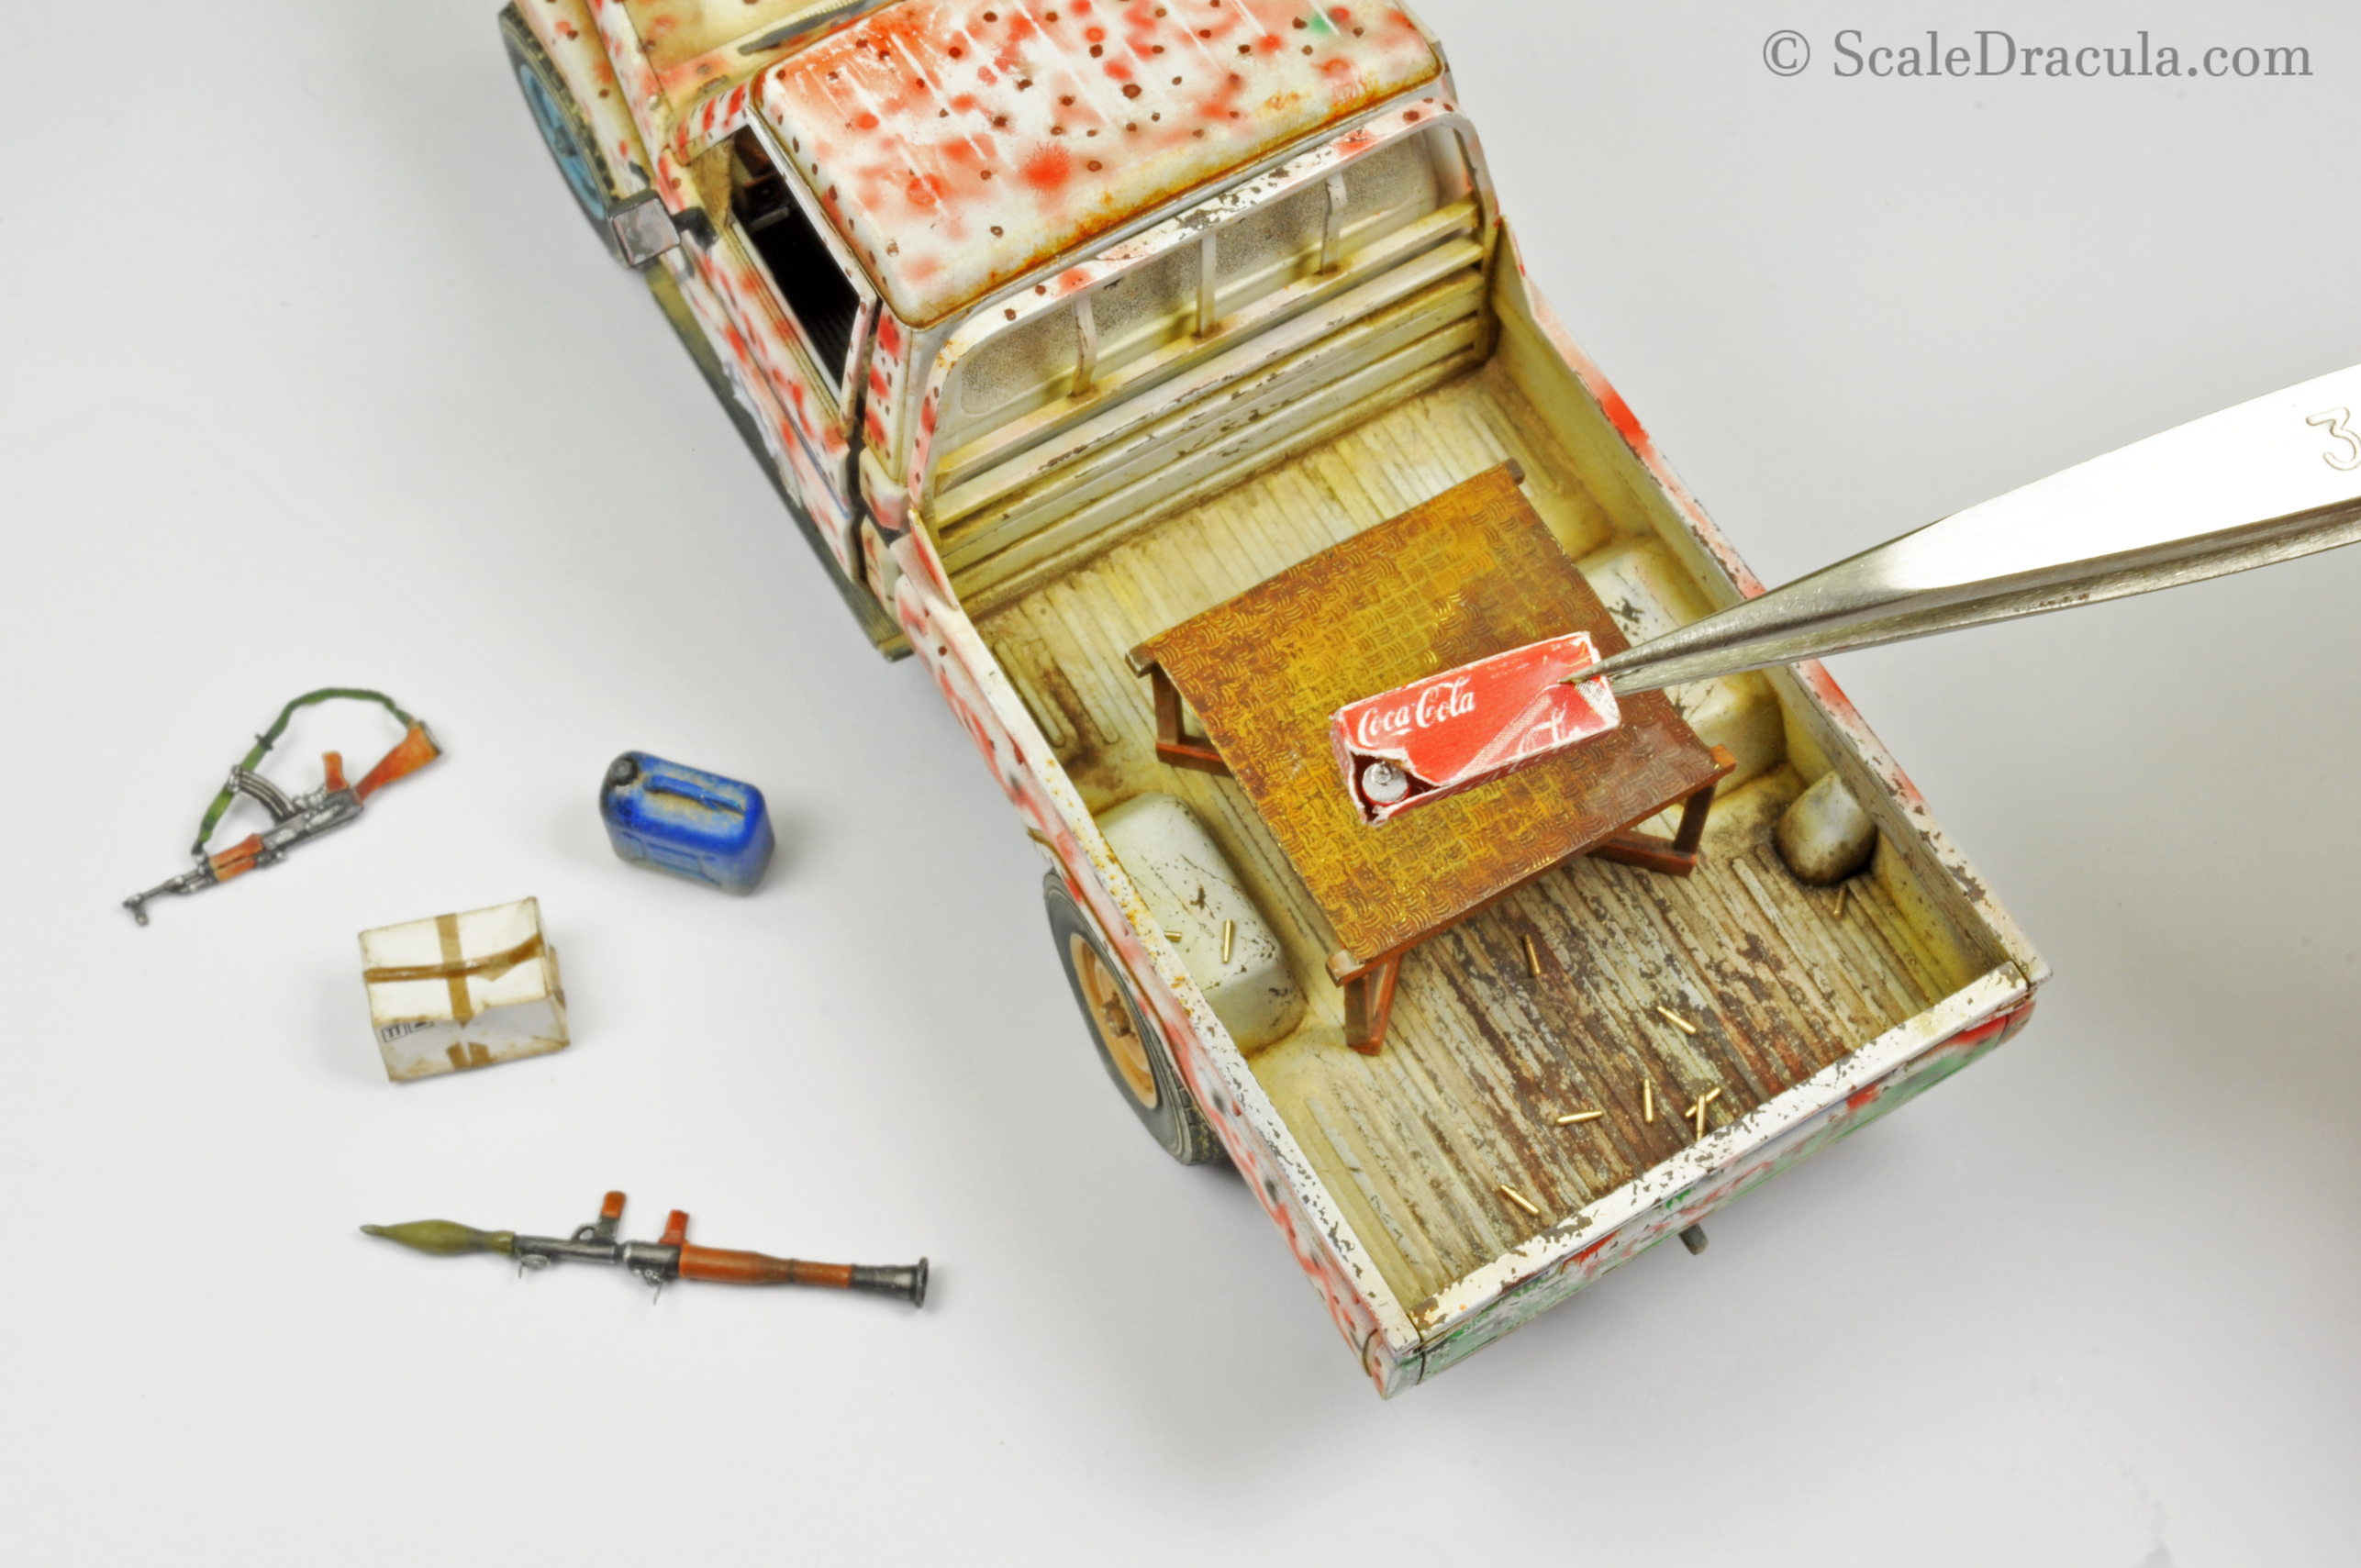 Adding accesories to the model, Toyota technical by Meng